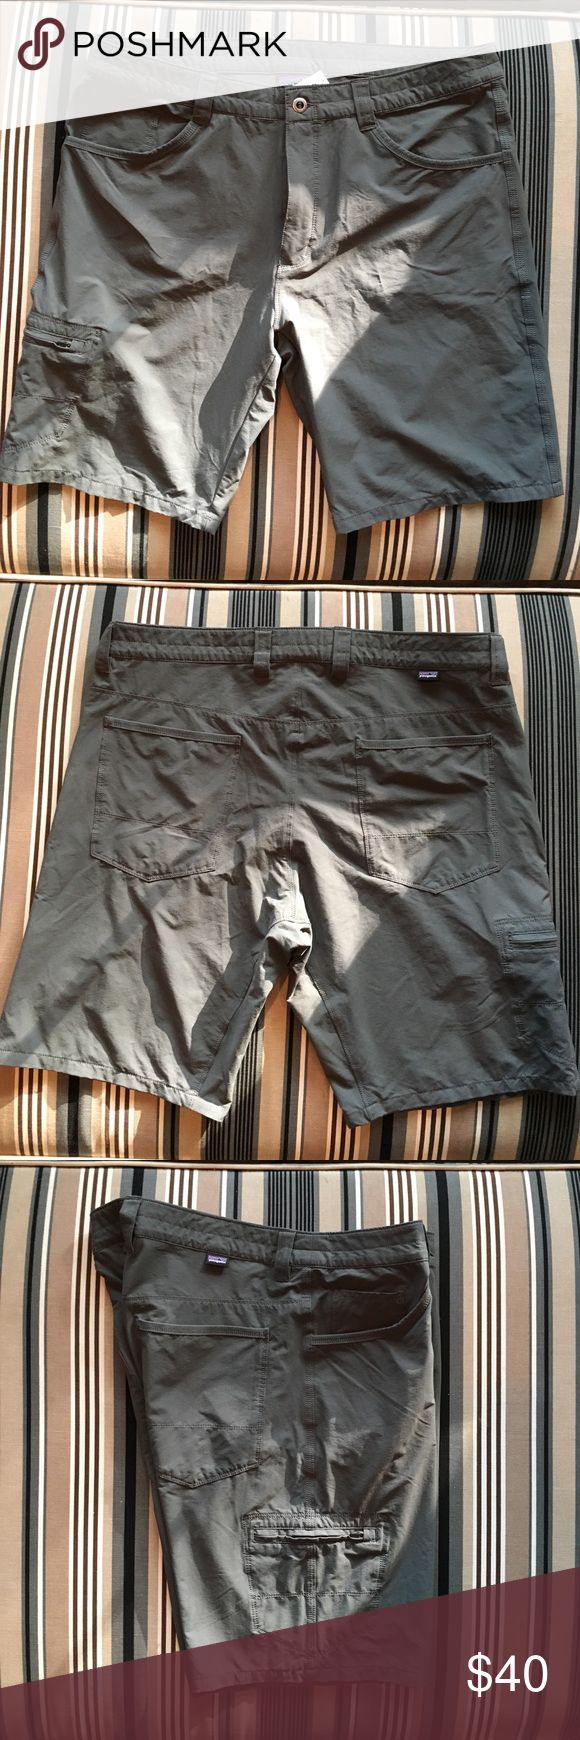 Men's Patagonia Gray Shorts Excellent condition. Side pocket is a zipper closure. 96% nylon, 4% spandex Patagonia Shorts